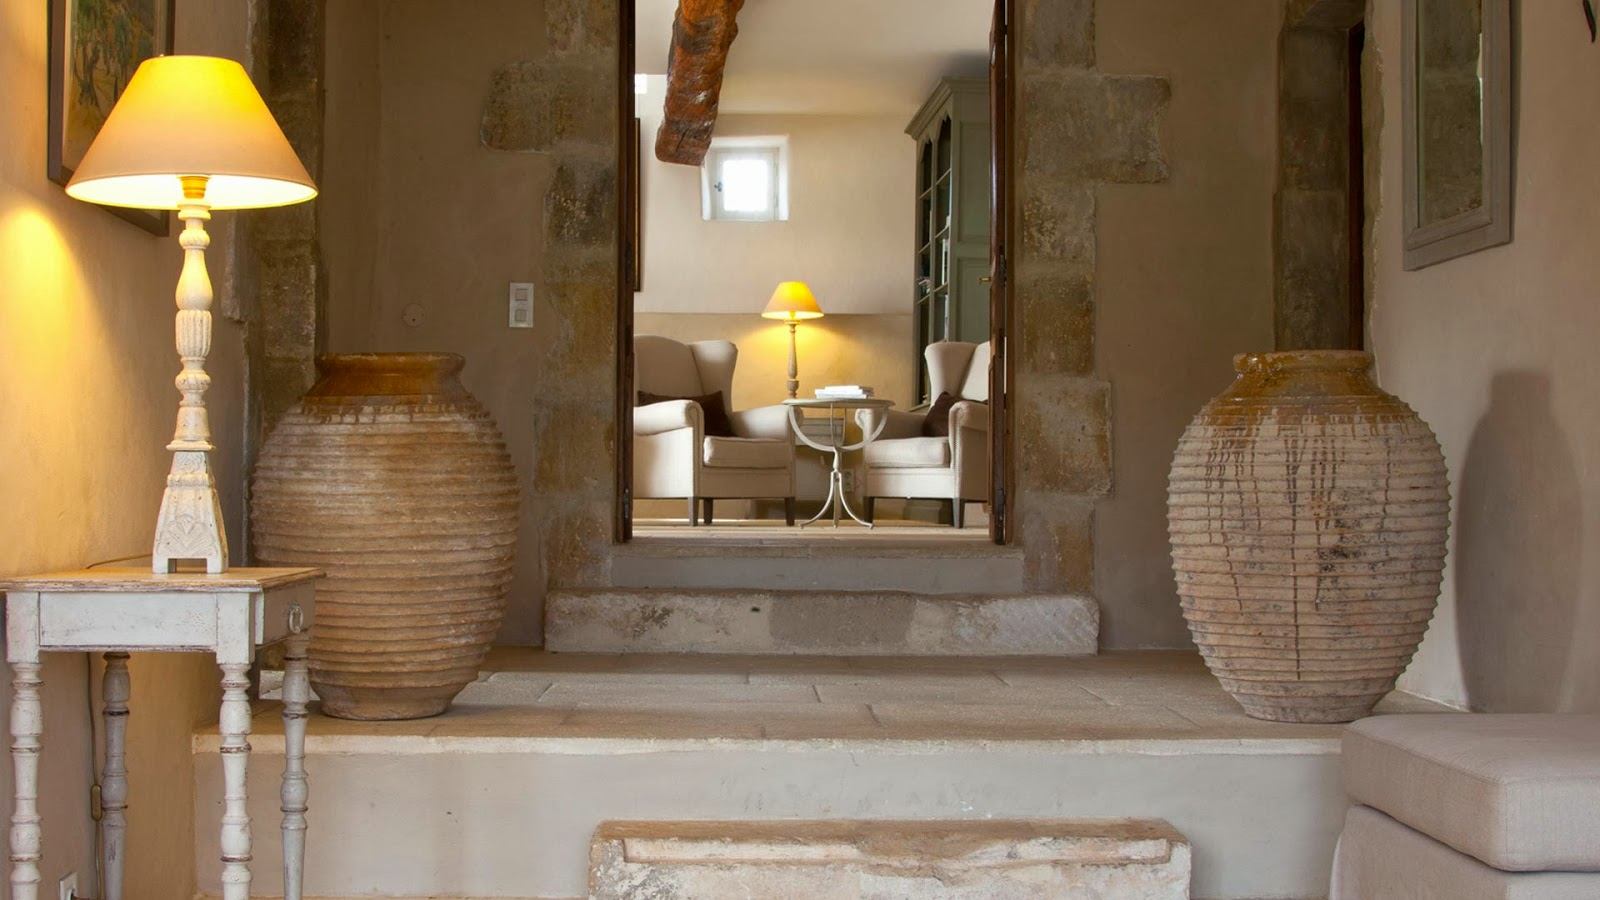 Le domaine de la rose jurnal de design interior for Decoration interieur mas provencal